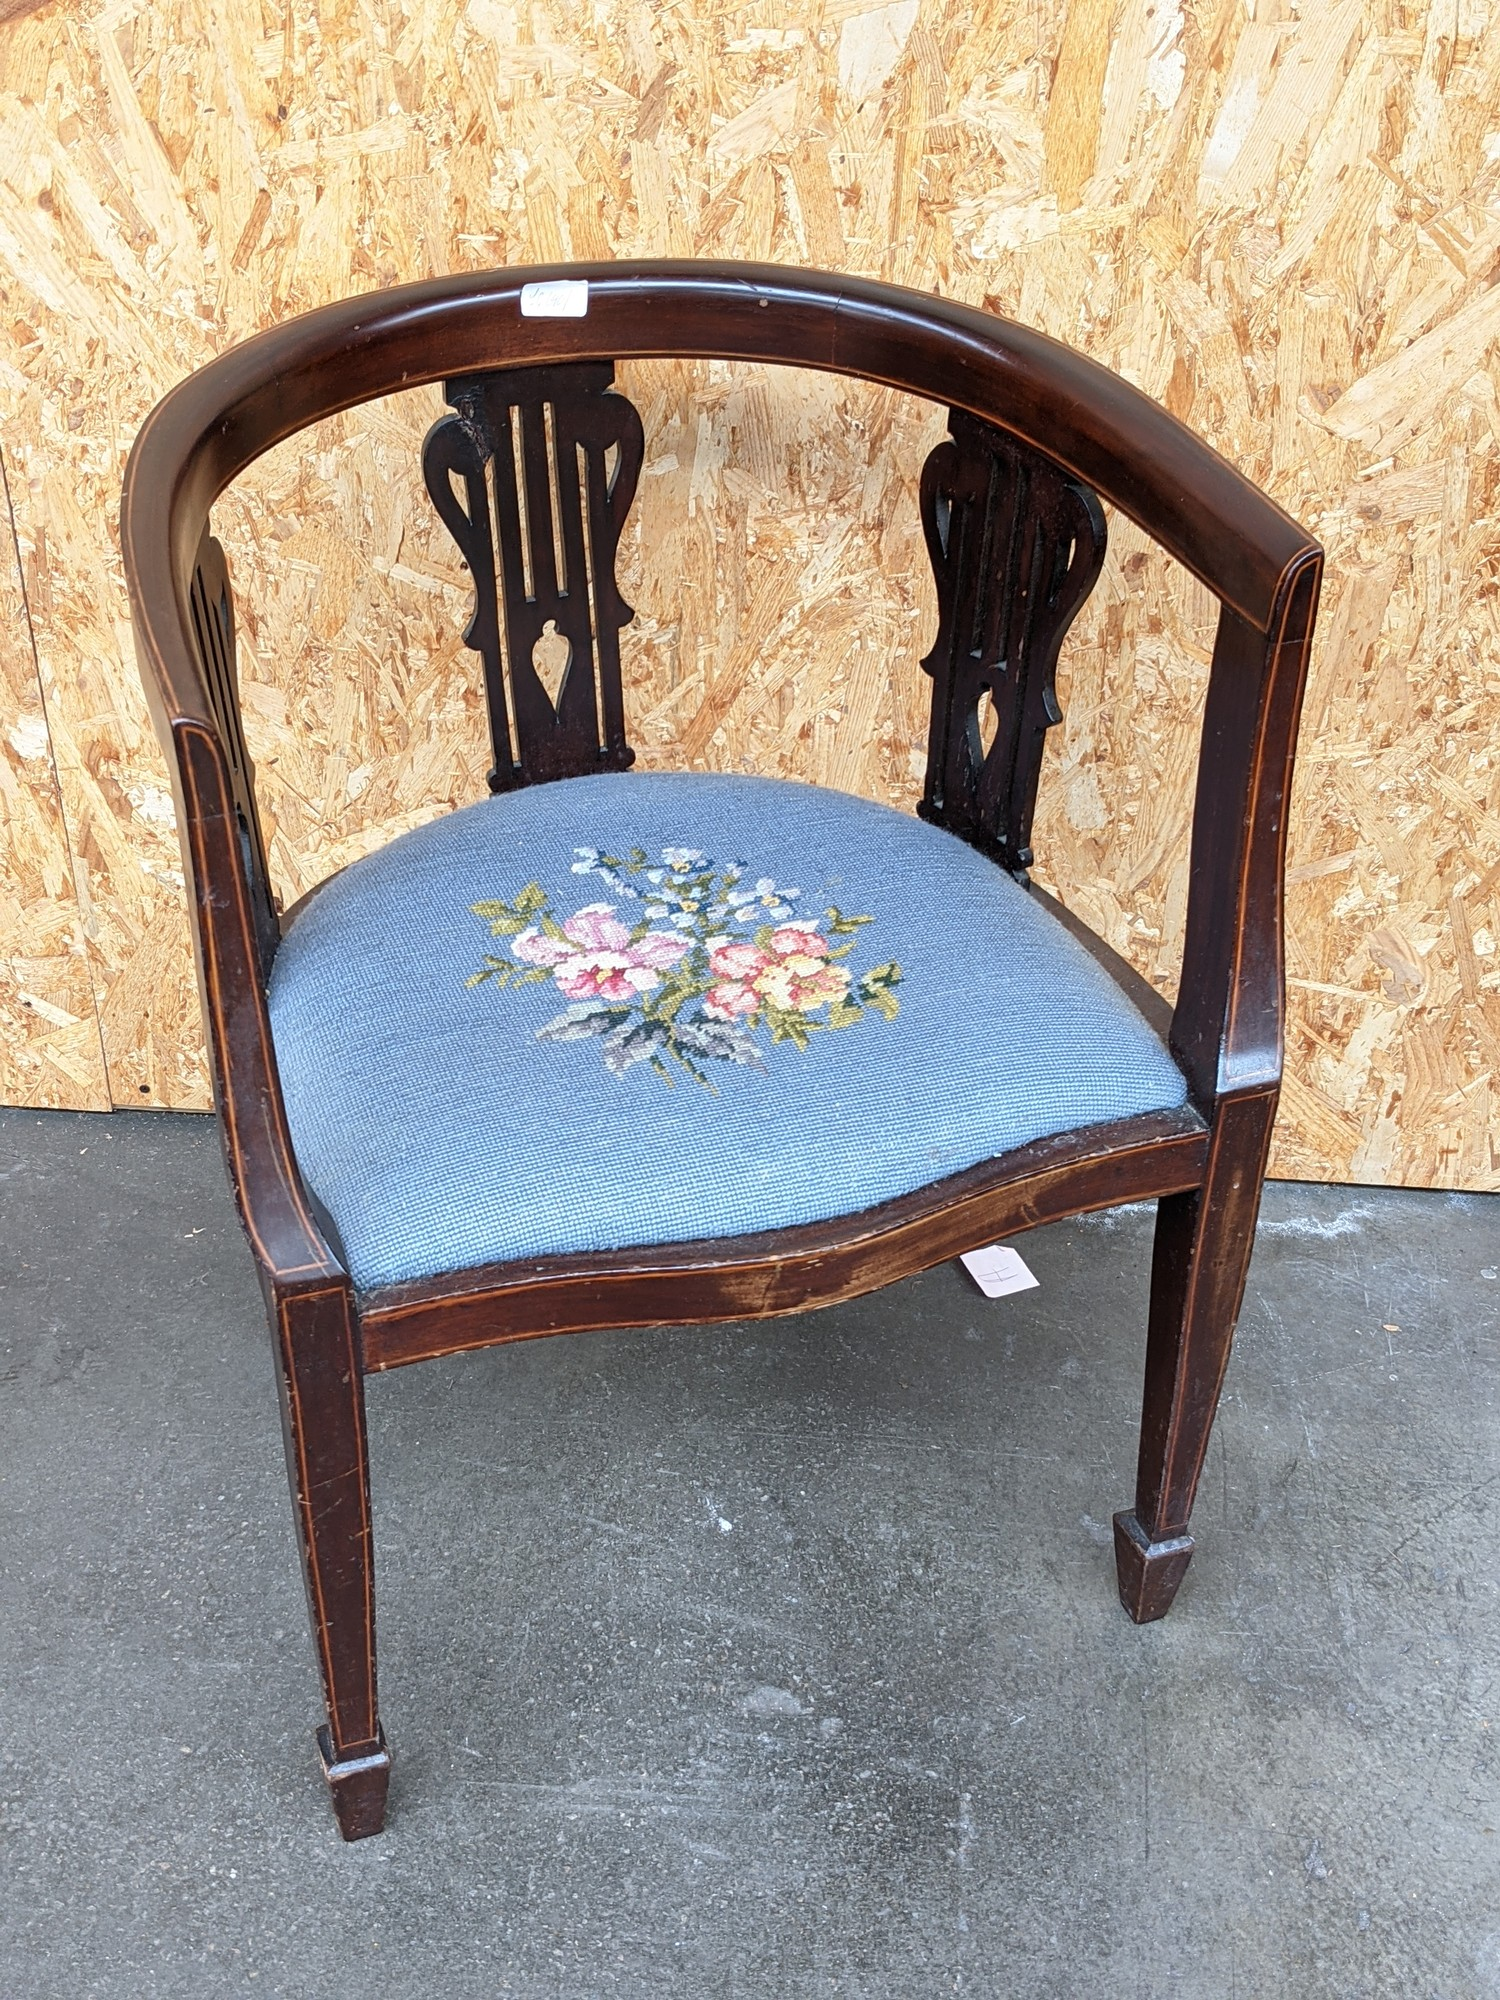 An Edwardian inlaid curved back arm chair, with three splat supports, upon pedestal legs,